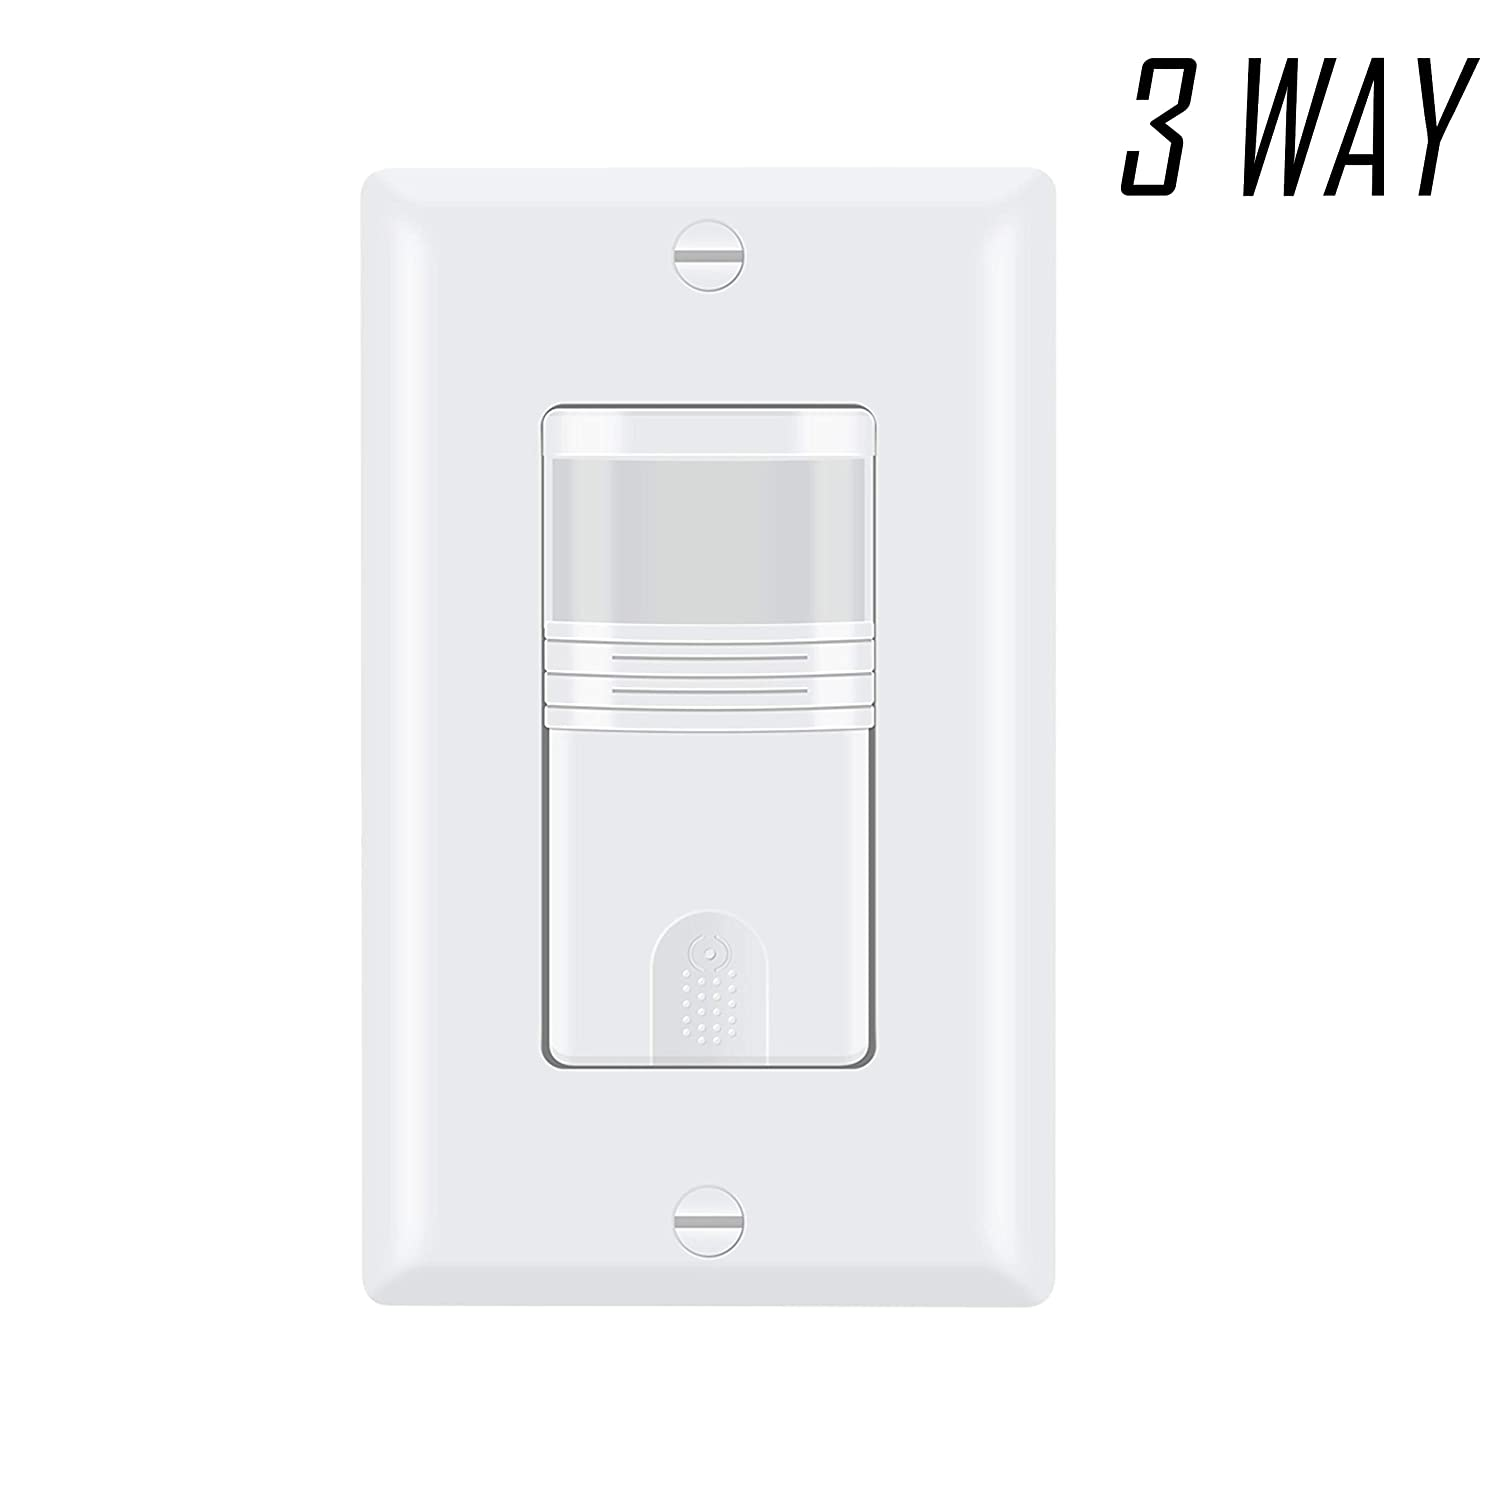 ECOELER Single Pole / 3 Way Motion Sensor Light Switch, Neutral Wire Required, Multi-Dual Sensing Switch for Indoor Use